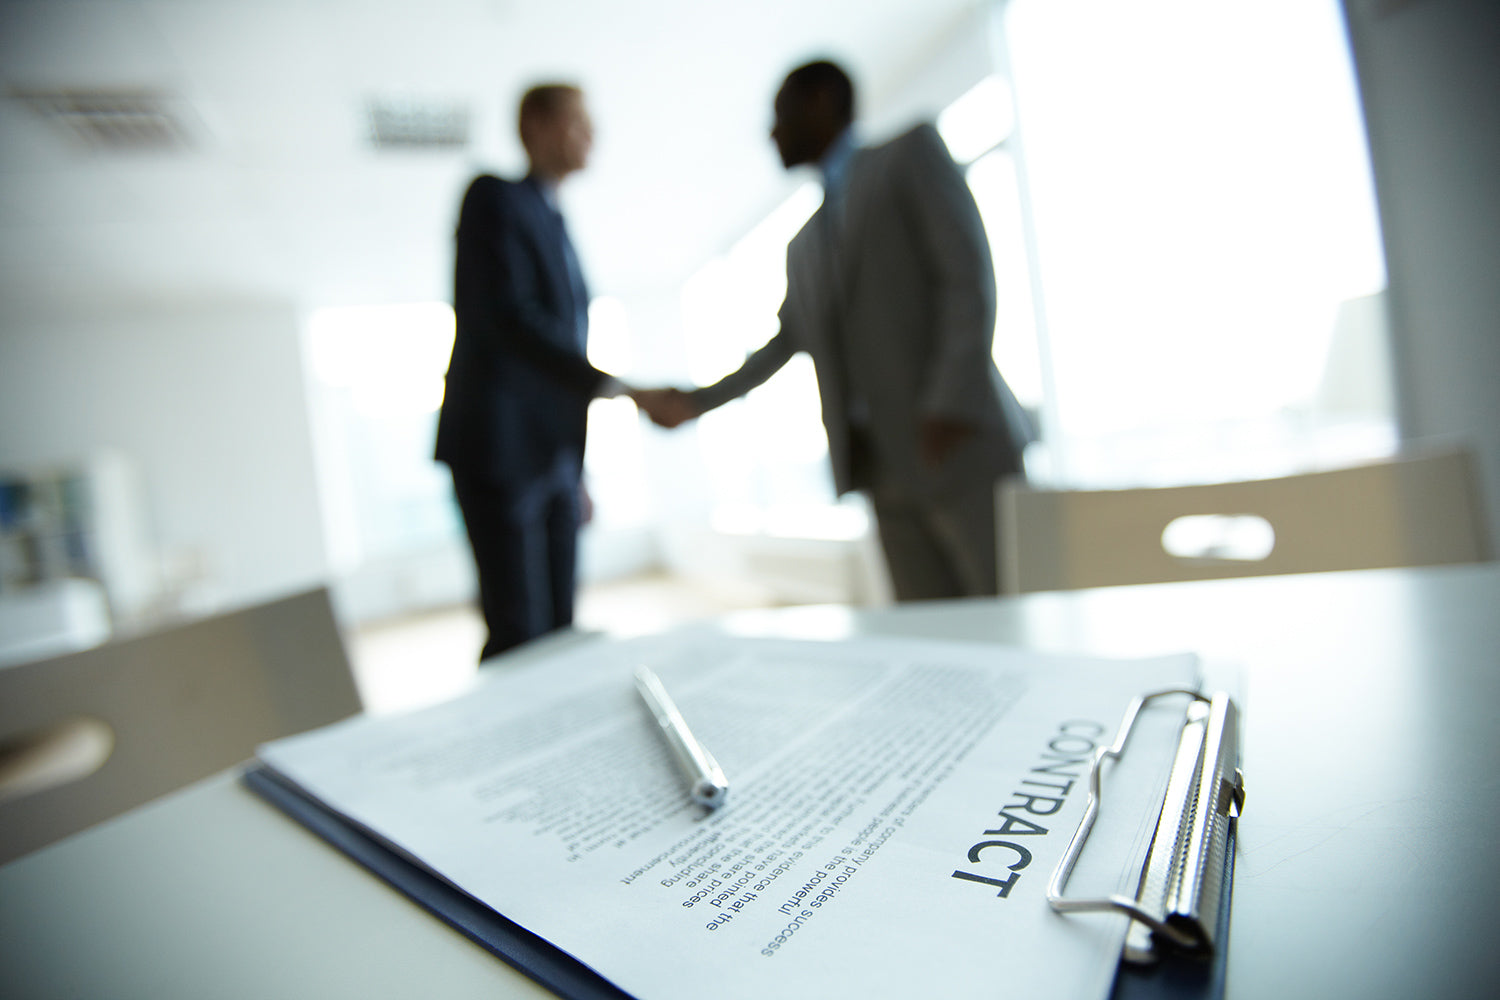 Shaking hands over signed copier lease agreement